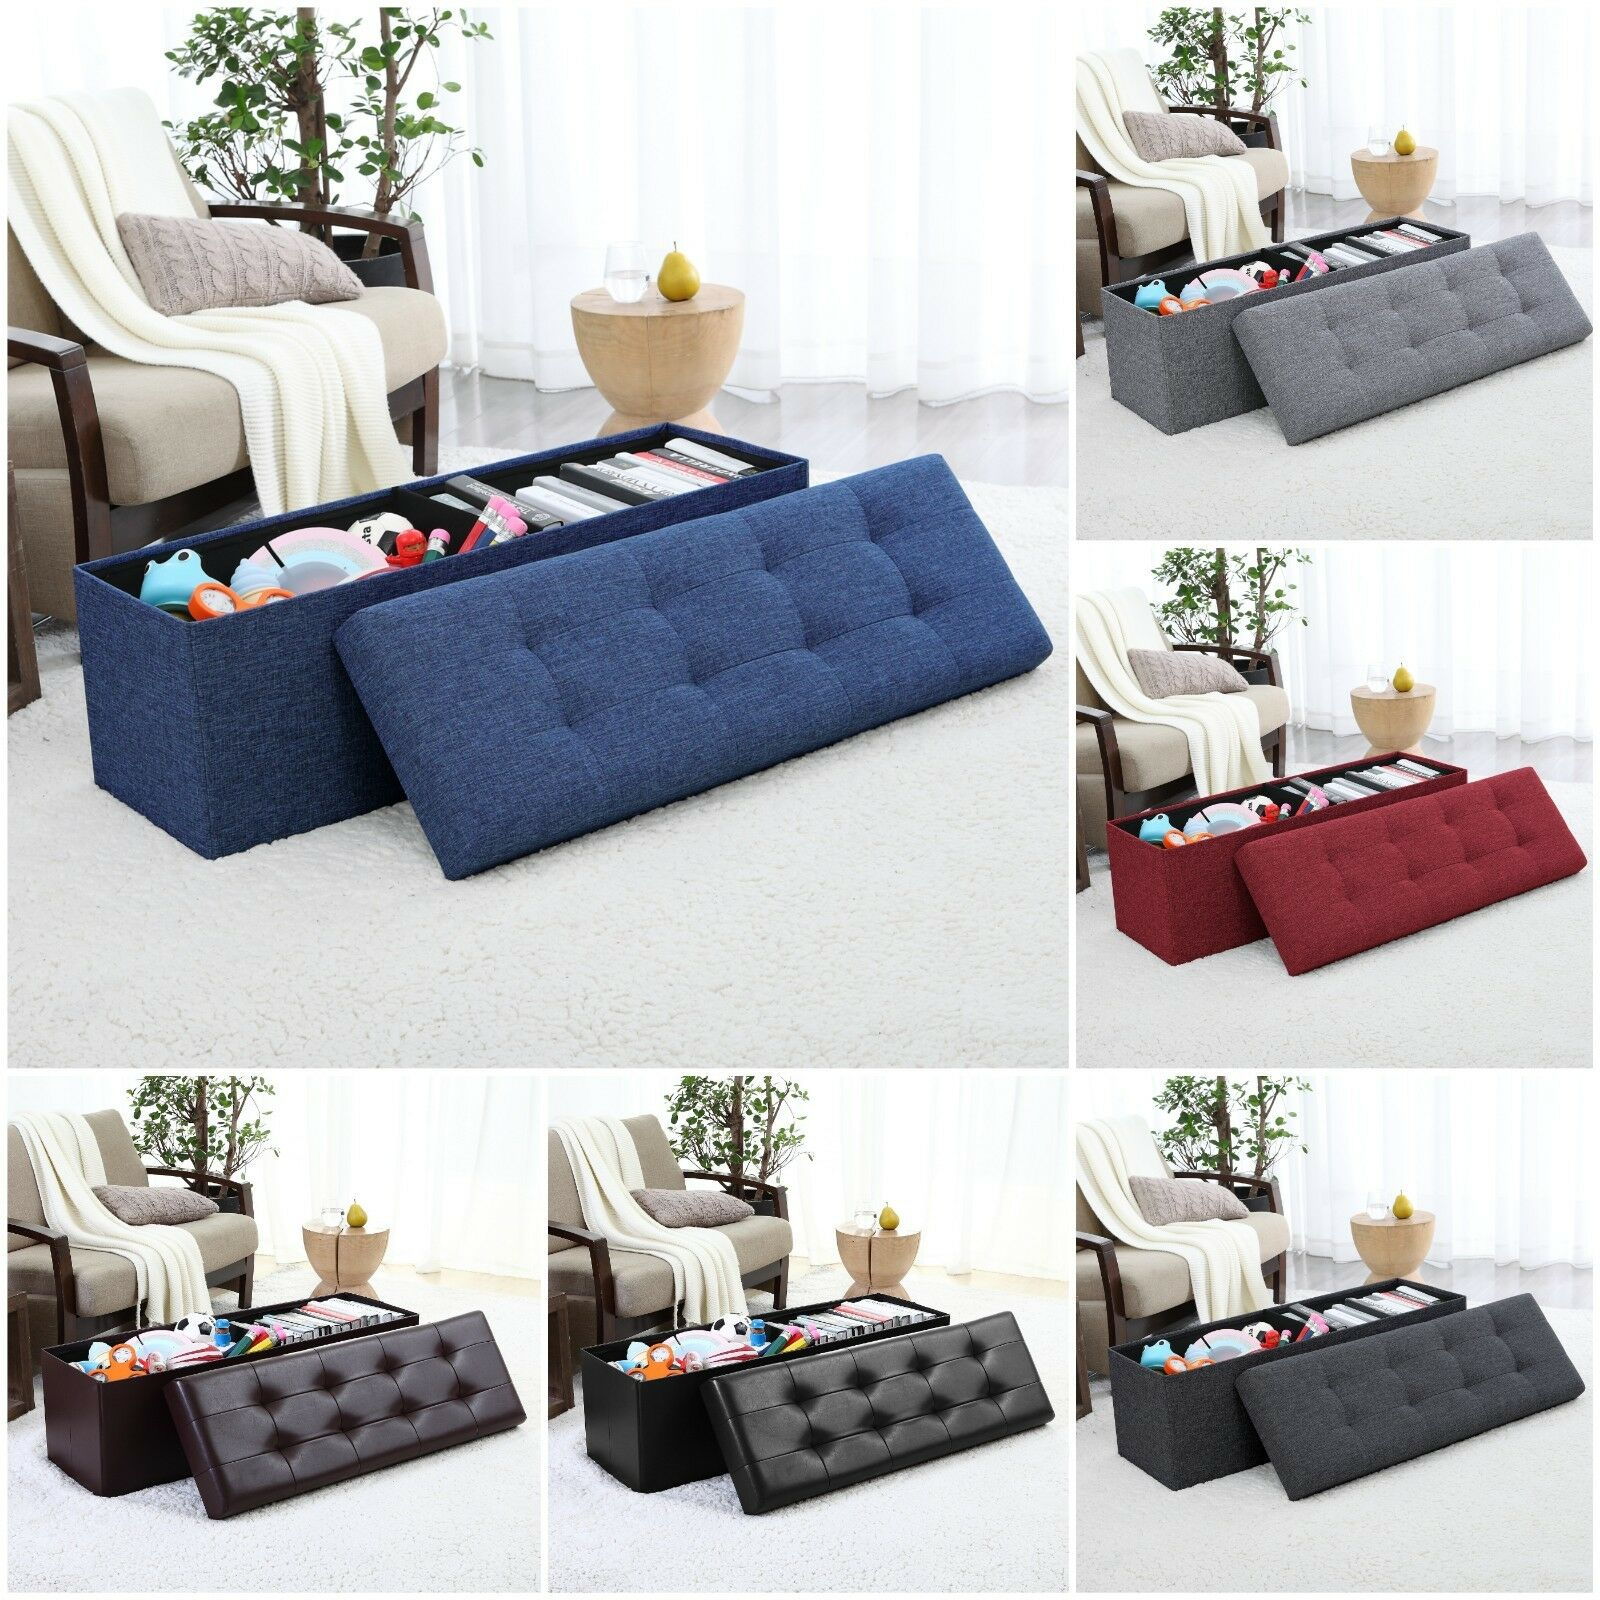 Foldable Tufted Large Storage Ottoman Bench Foot Rest Stool/